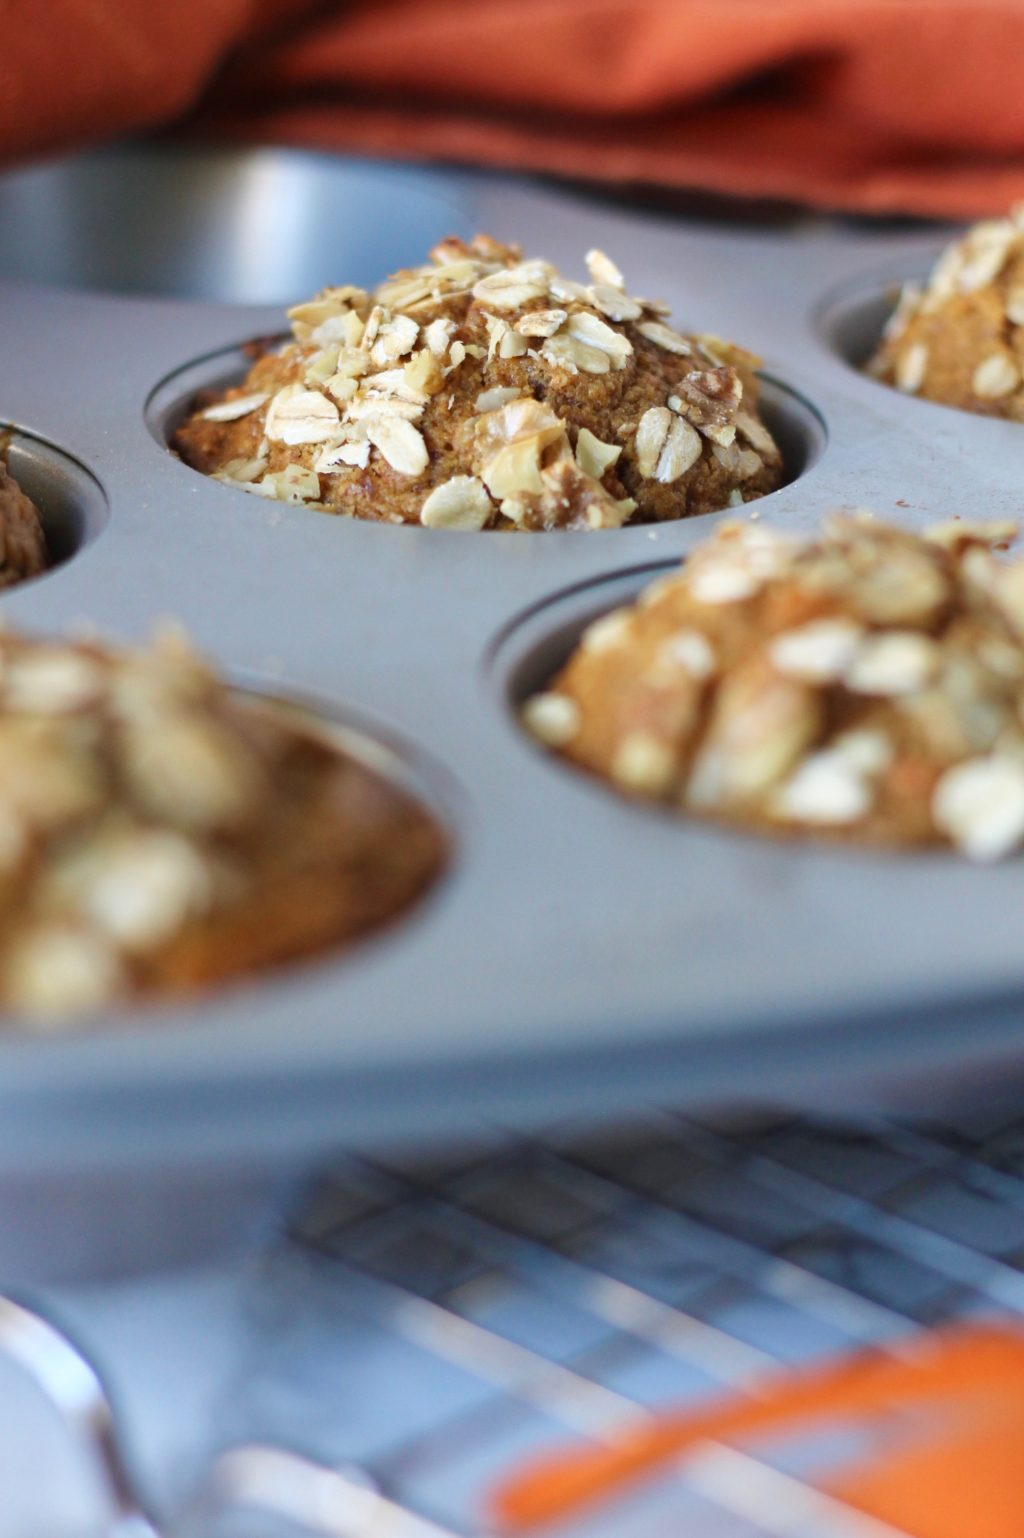 Whole Wheat Carrot Muffins with Walnuts | www.littlechefbigappetite.com 3